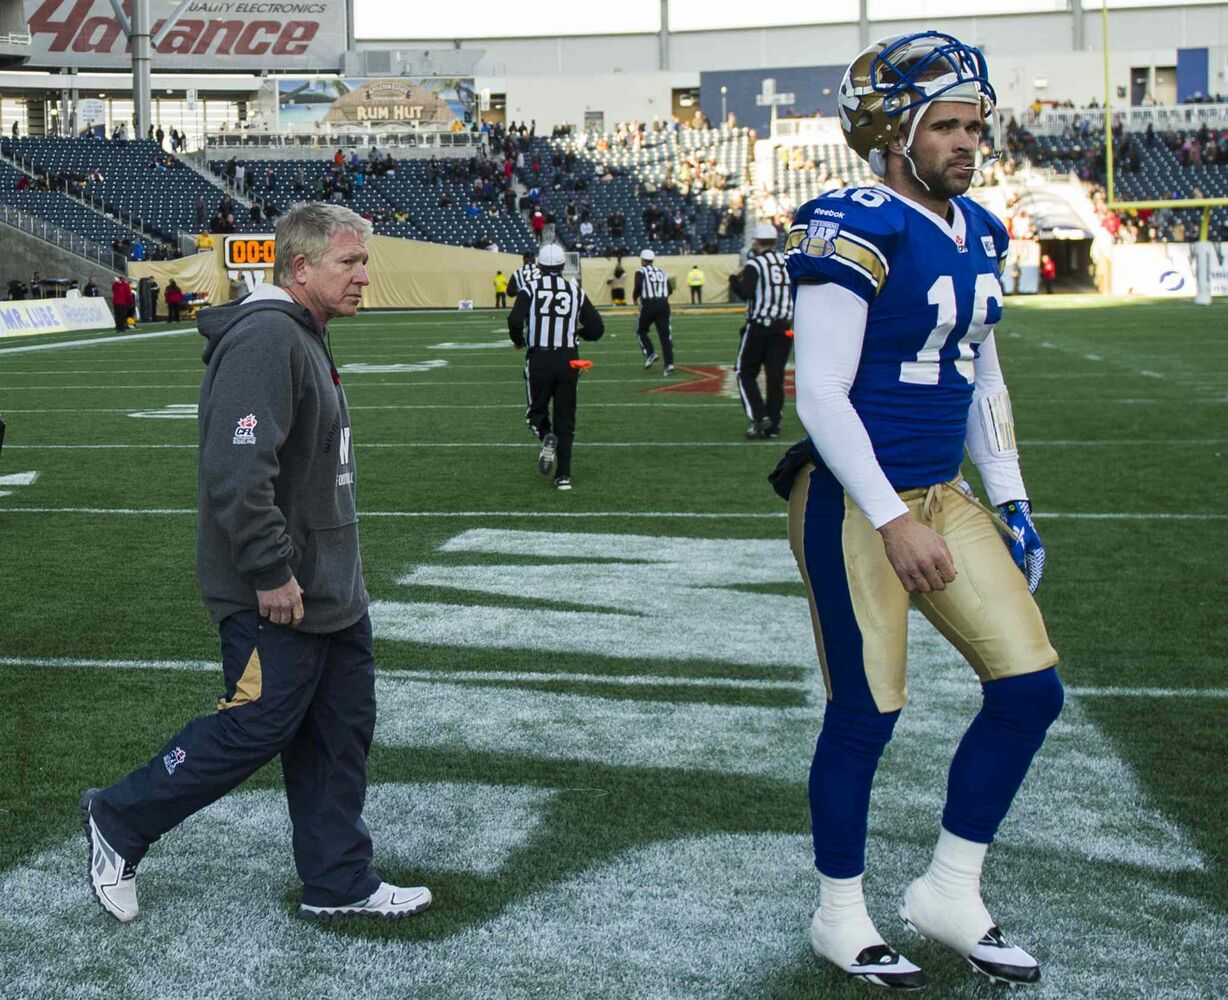 Winnipeg Blue Bombers head coach Tim Burke and quarterback Jason Boltus walk off of the field after the game. (David Lipnowski / Winnipeg Free Press)